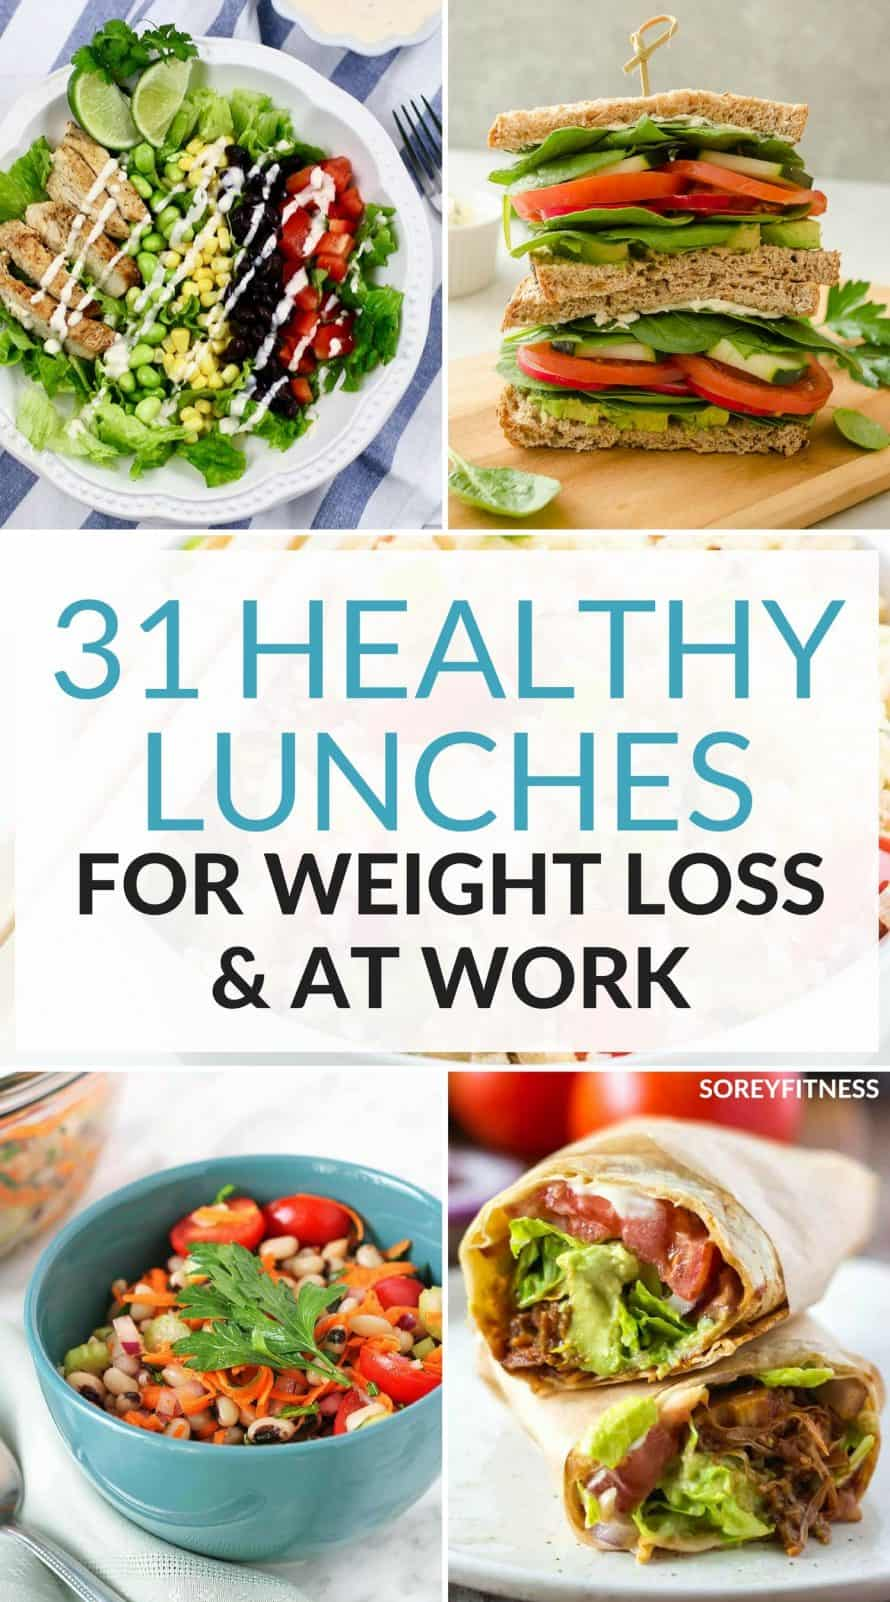 31 healthy lunch ideas for weight loss while at work